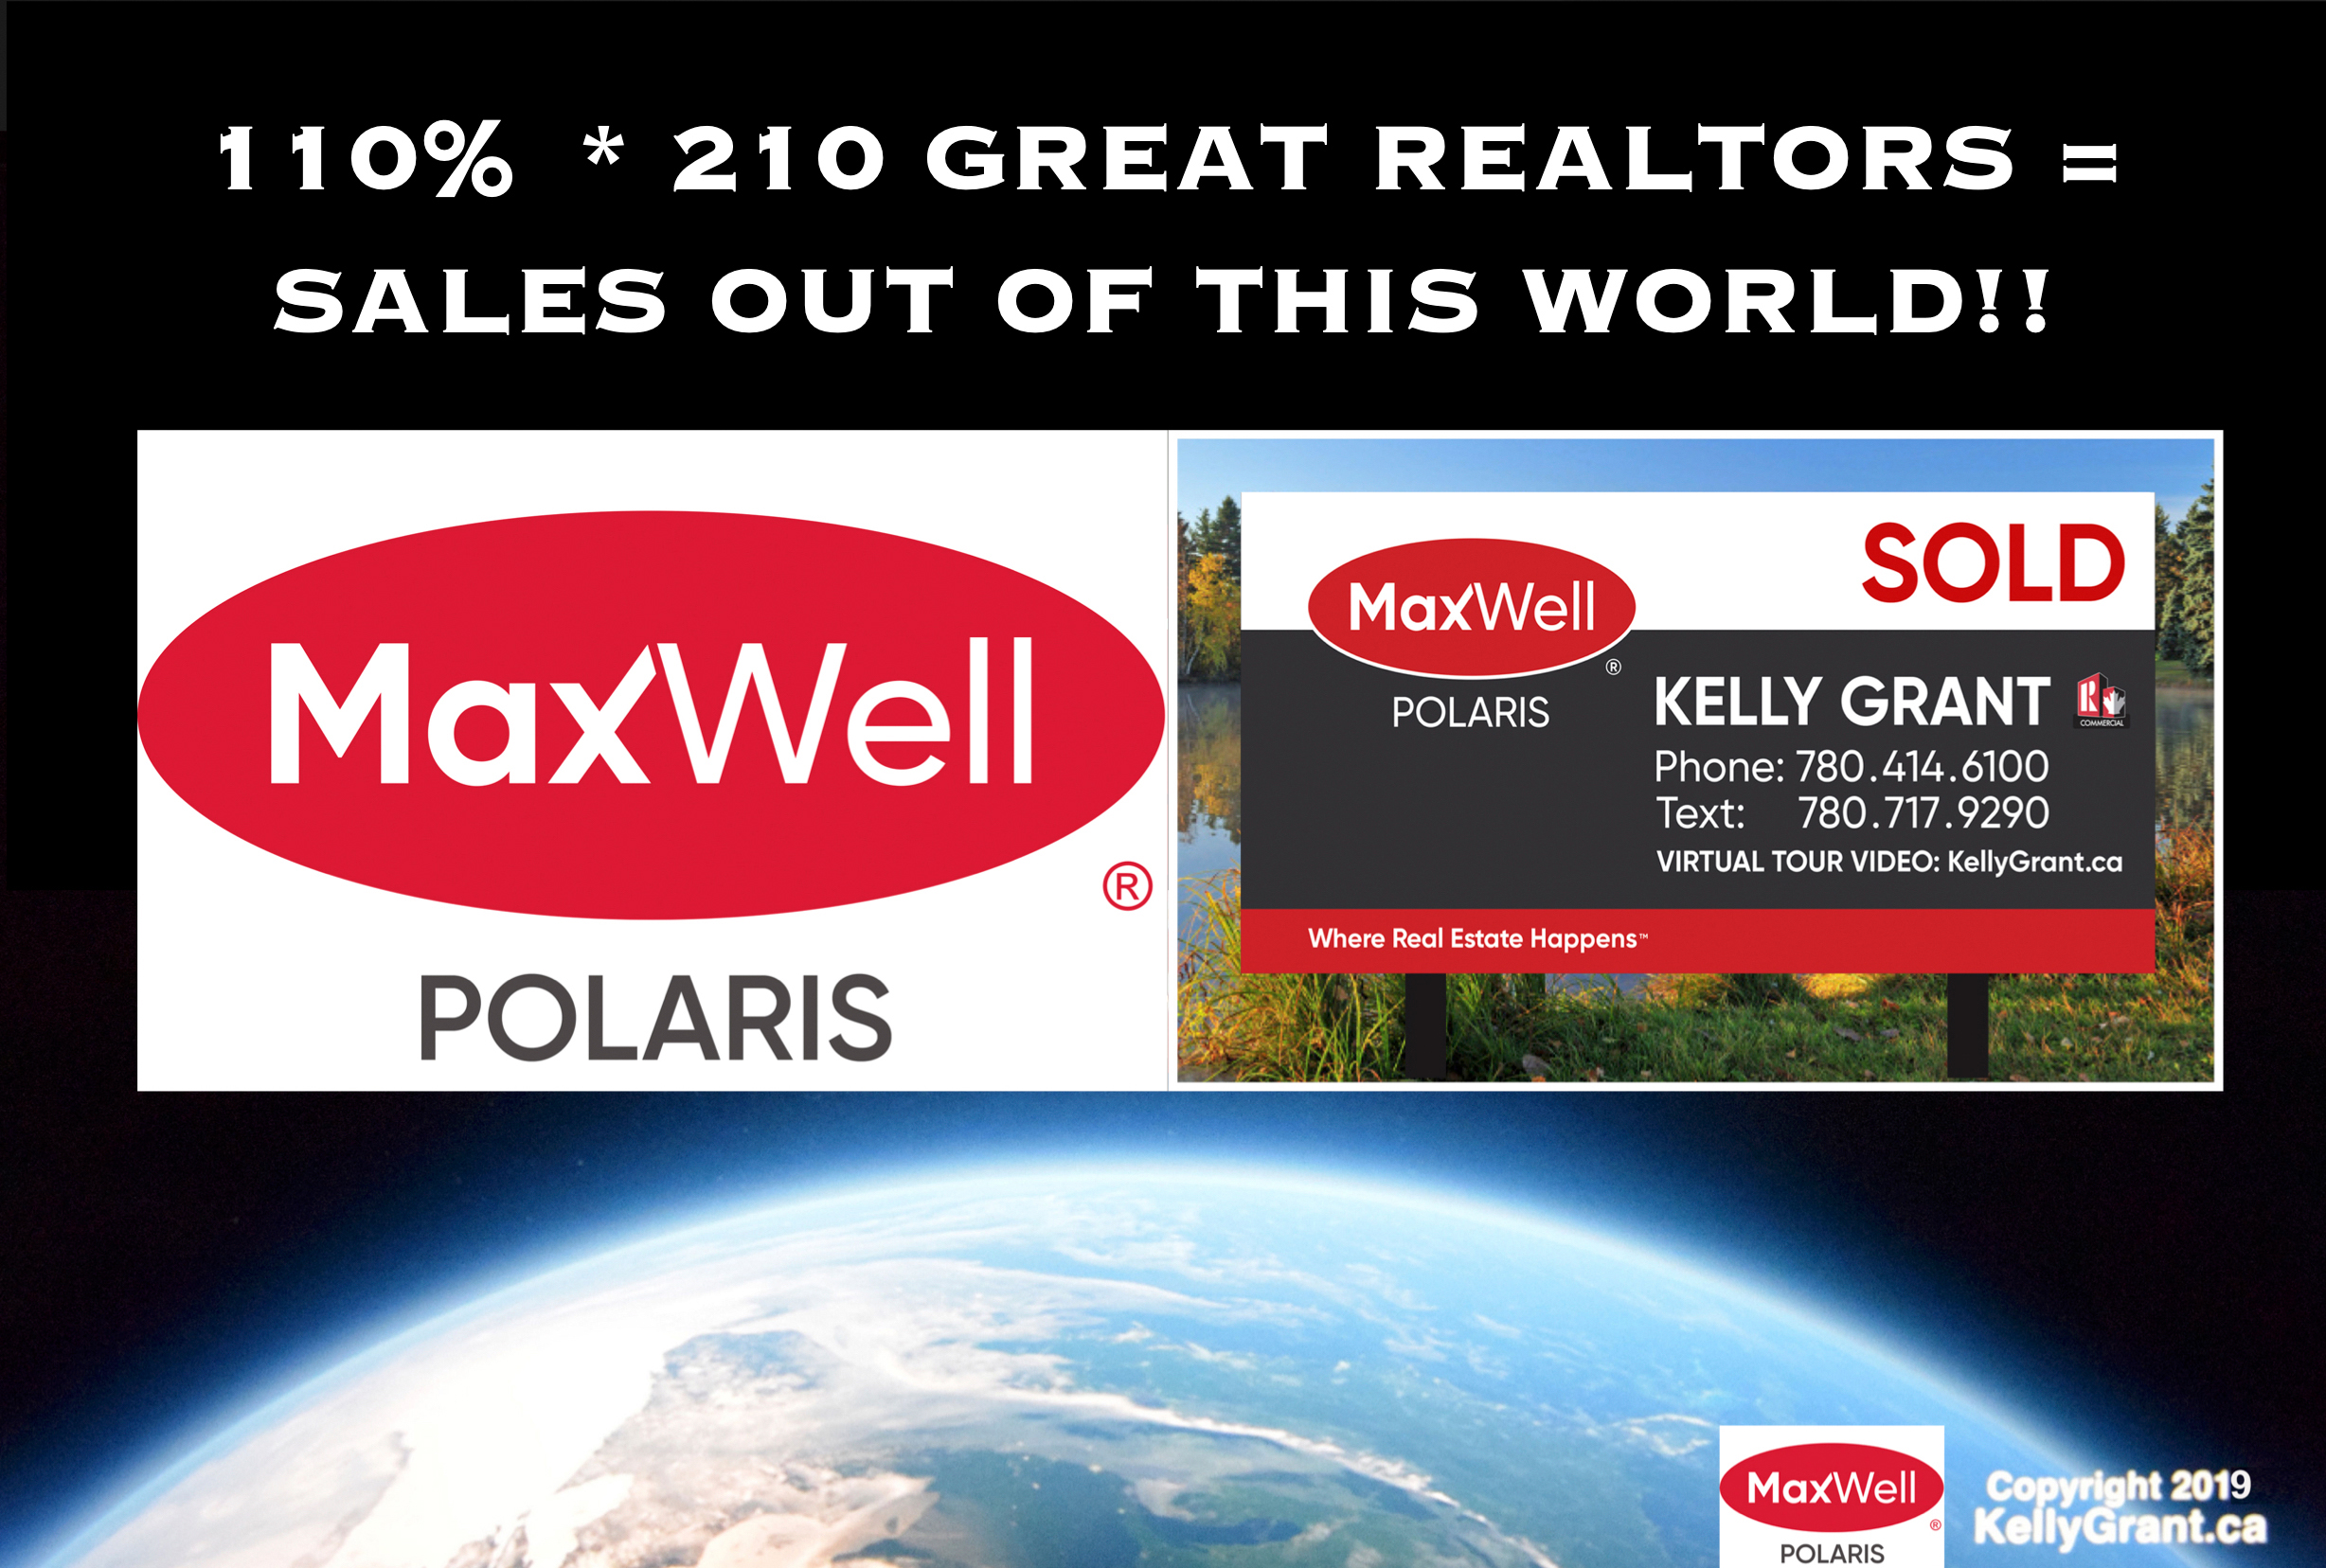 110% * 210 Great REALTORS = Sales Out of this World!